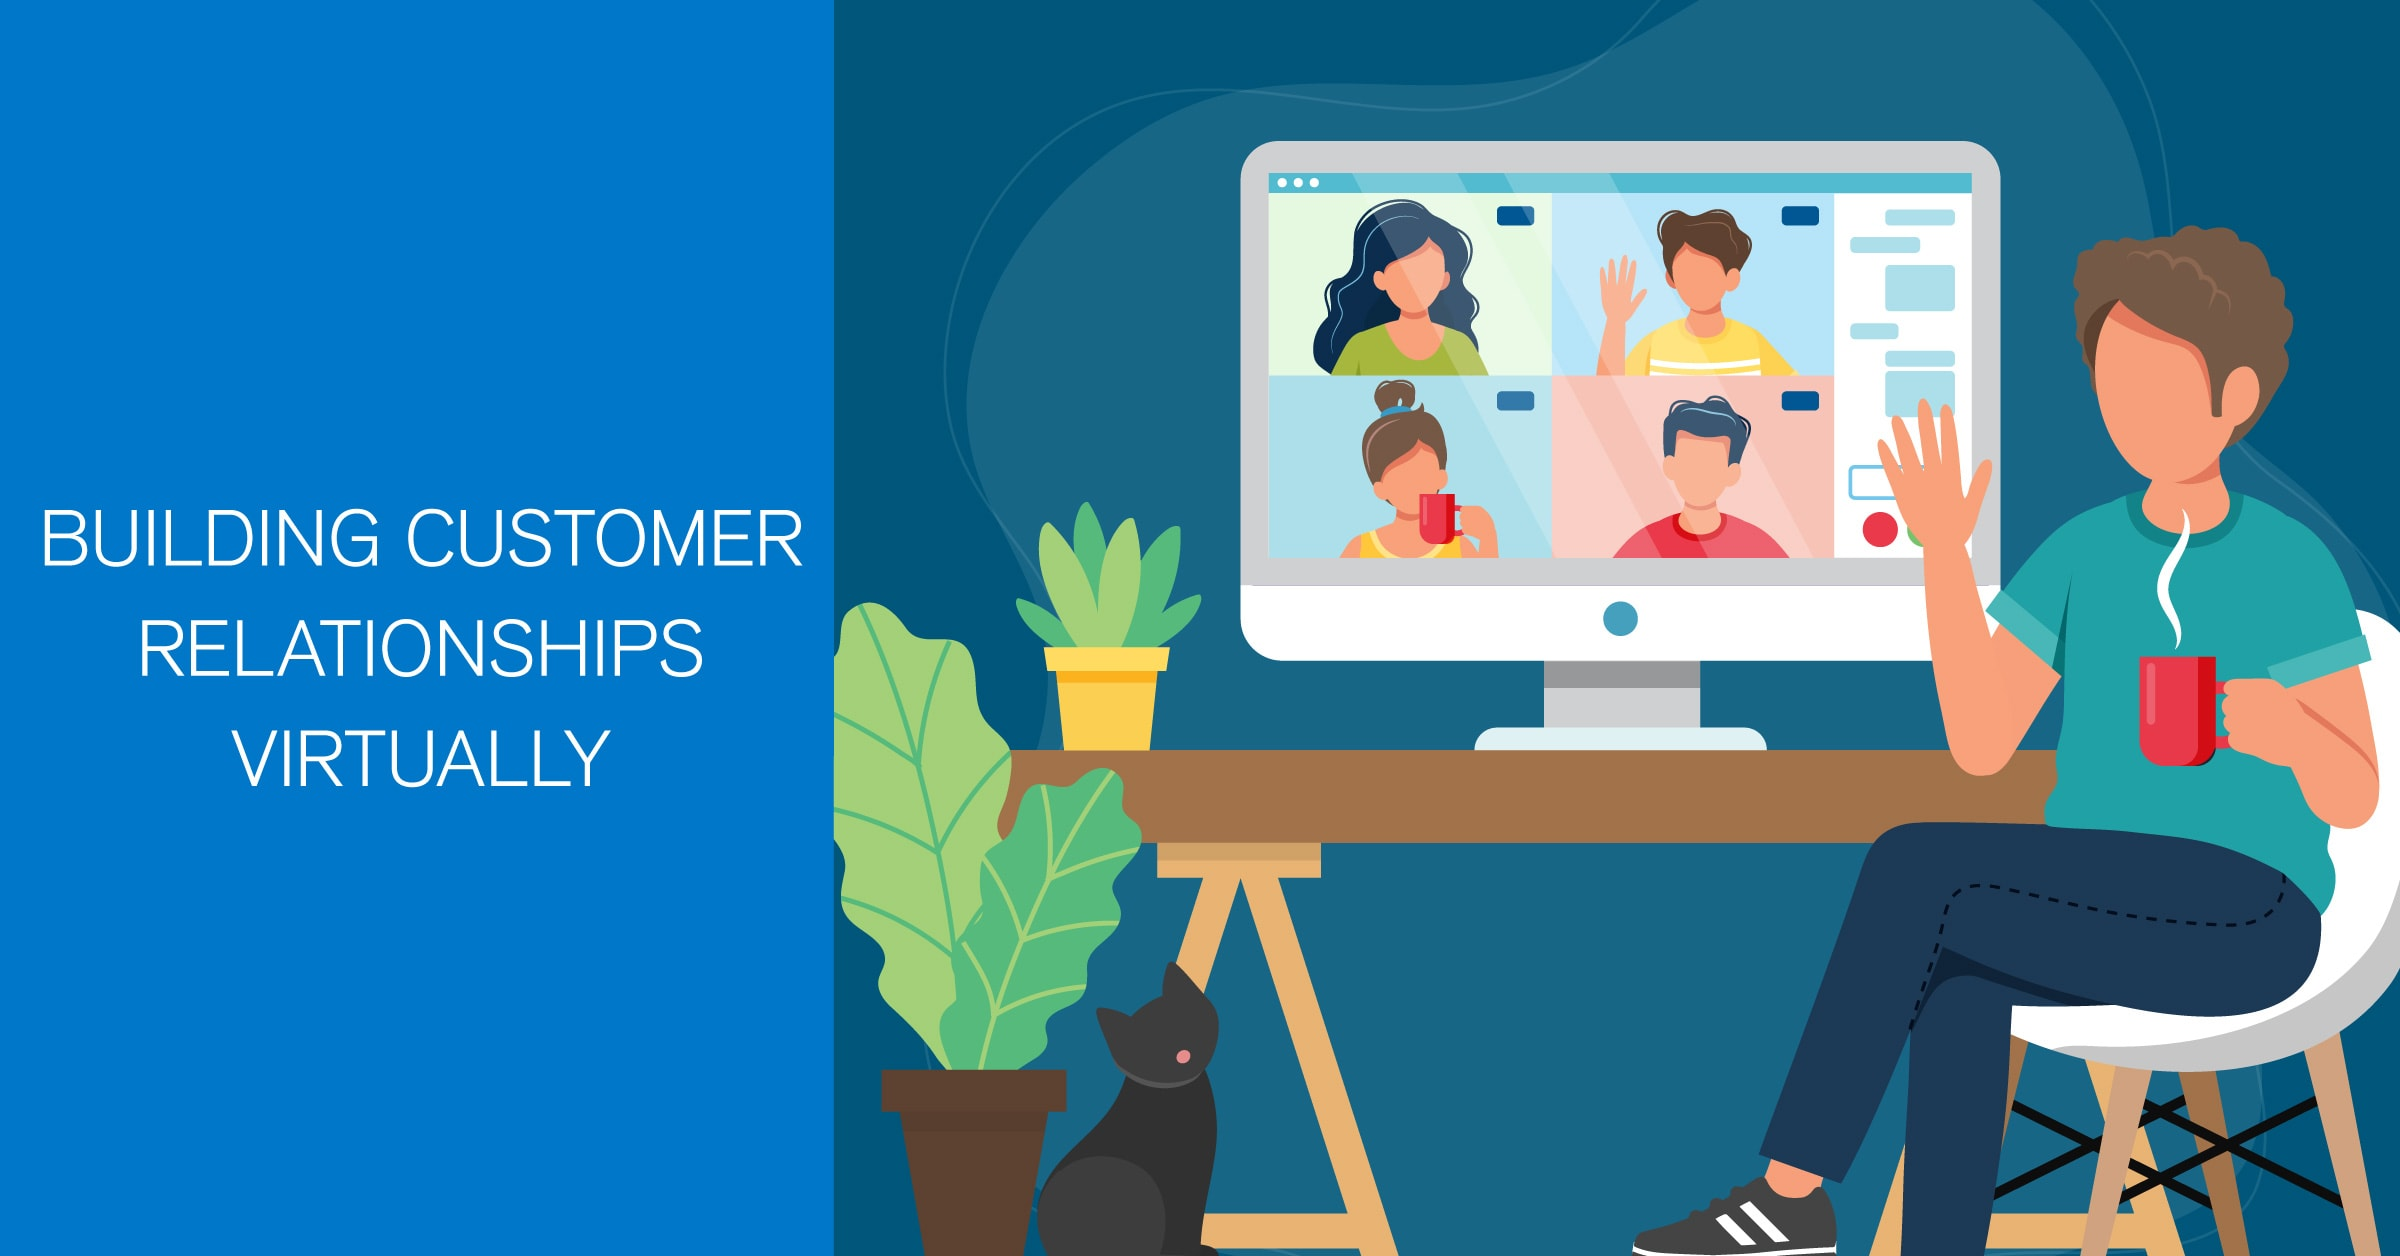 Building Customer Relationships Virtually